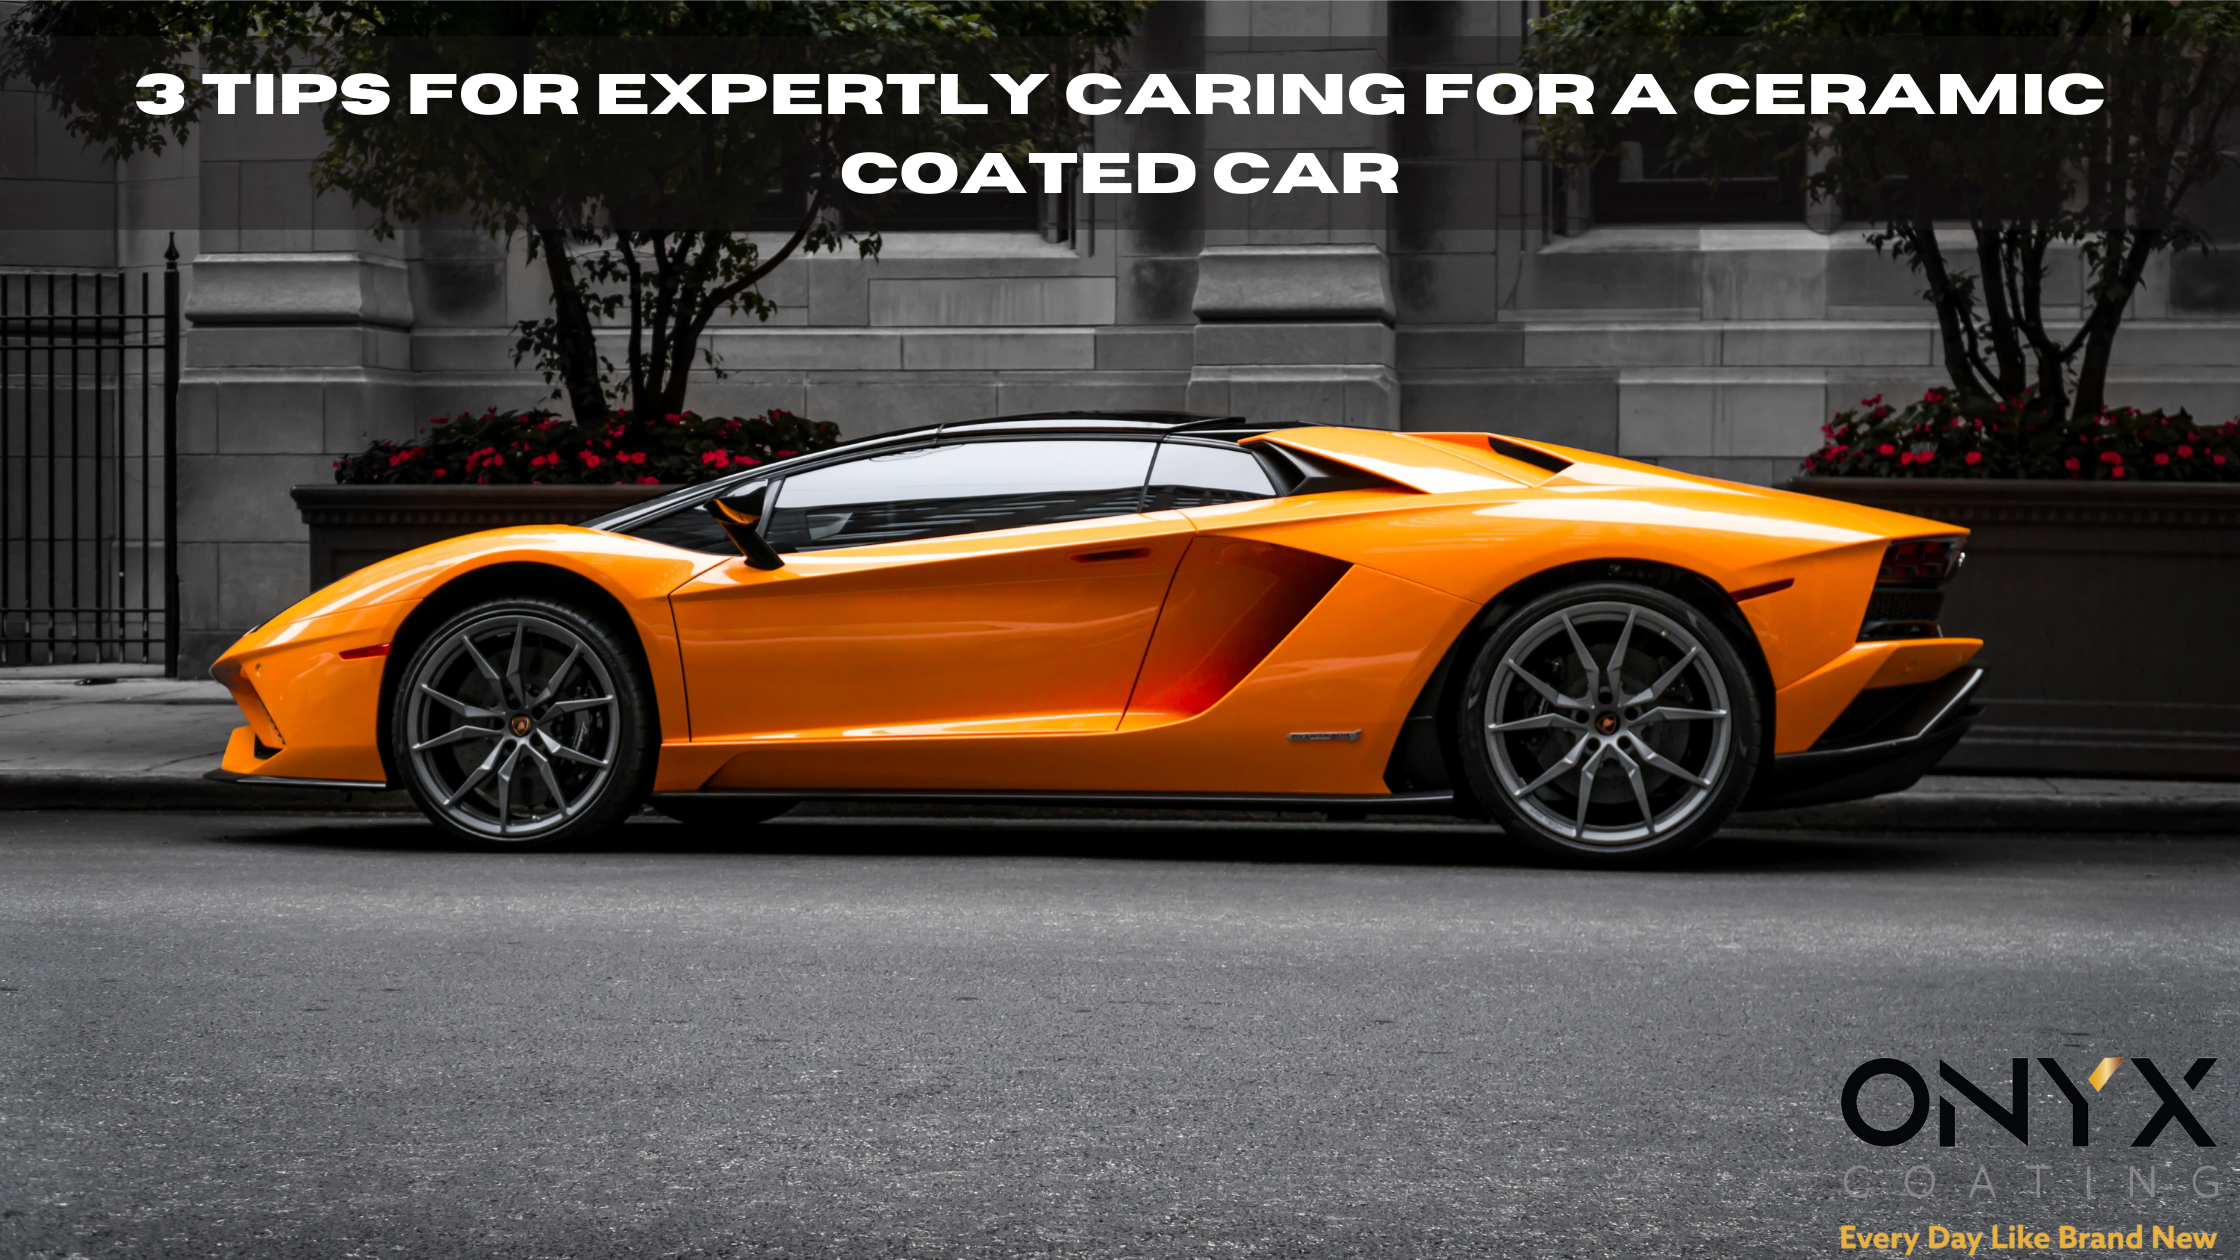 3 tips for expertly caring for a Ceramic Coated car